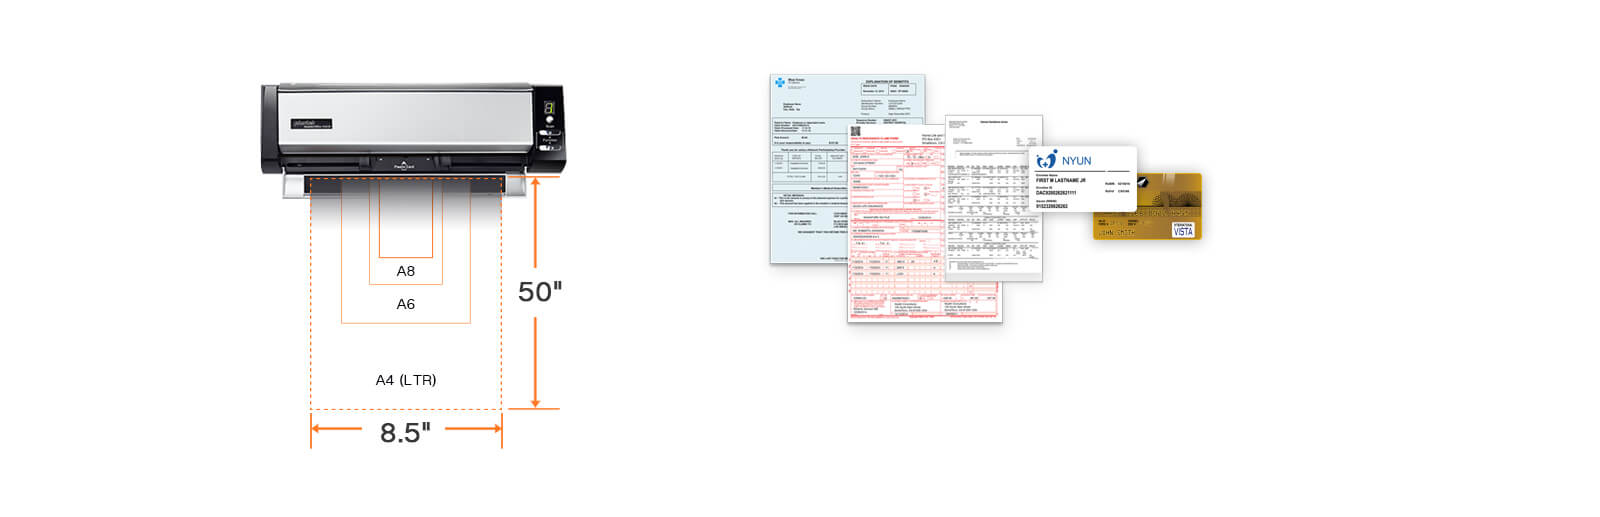 accept from A8 to A4,card scanning and document scanning